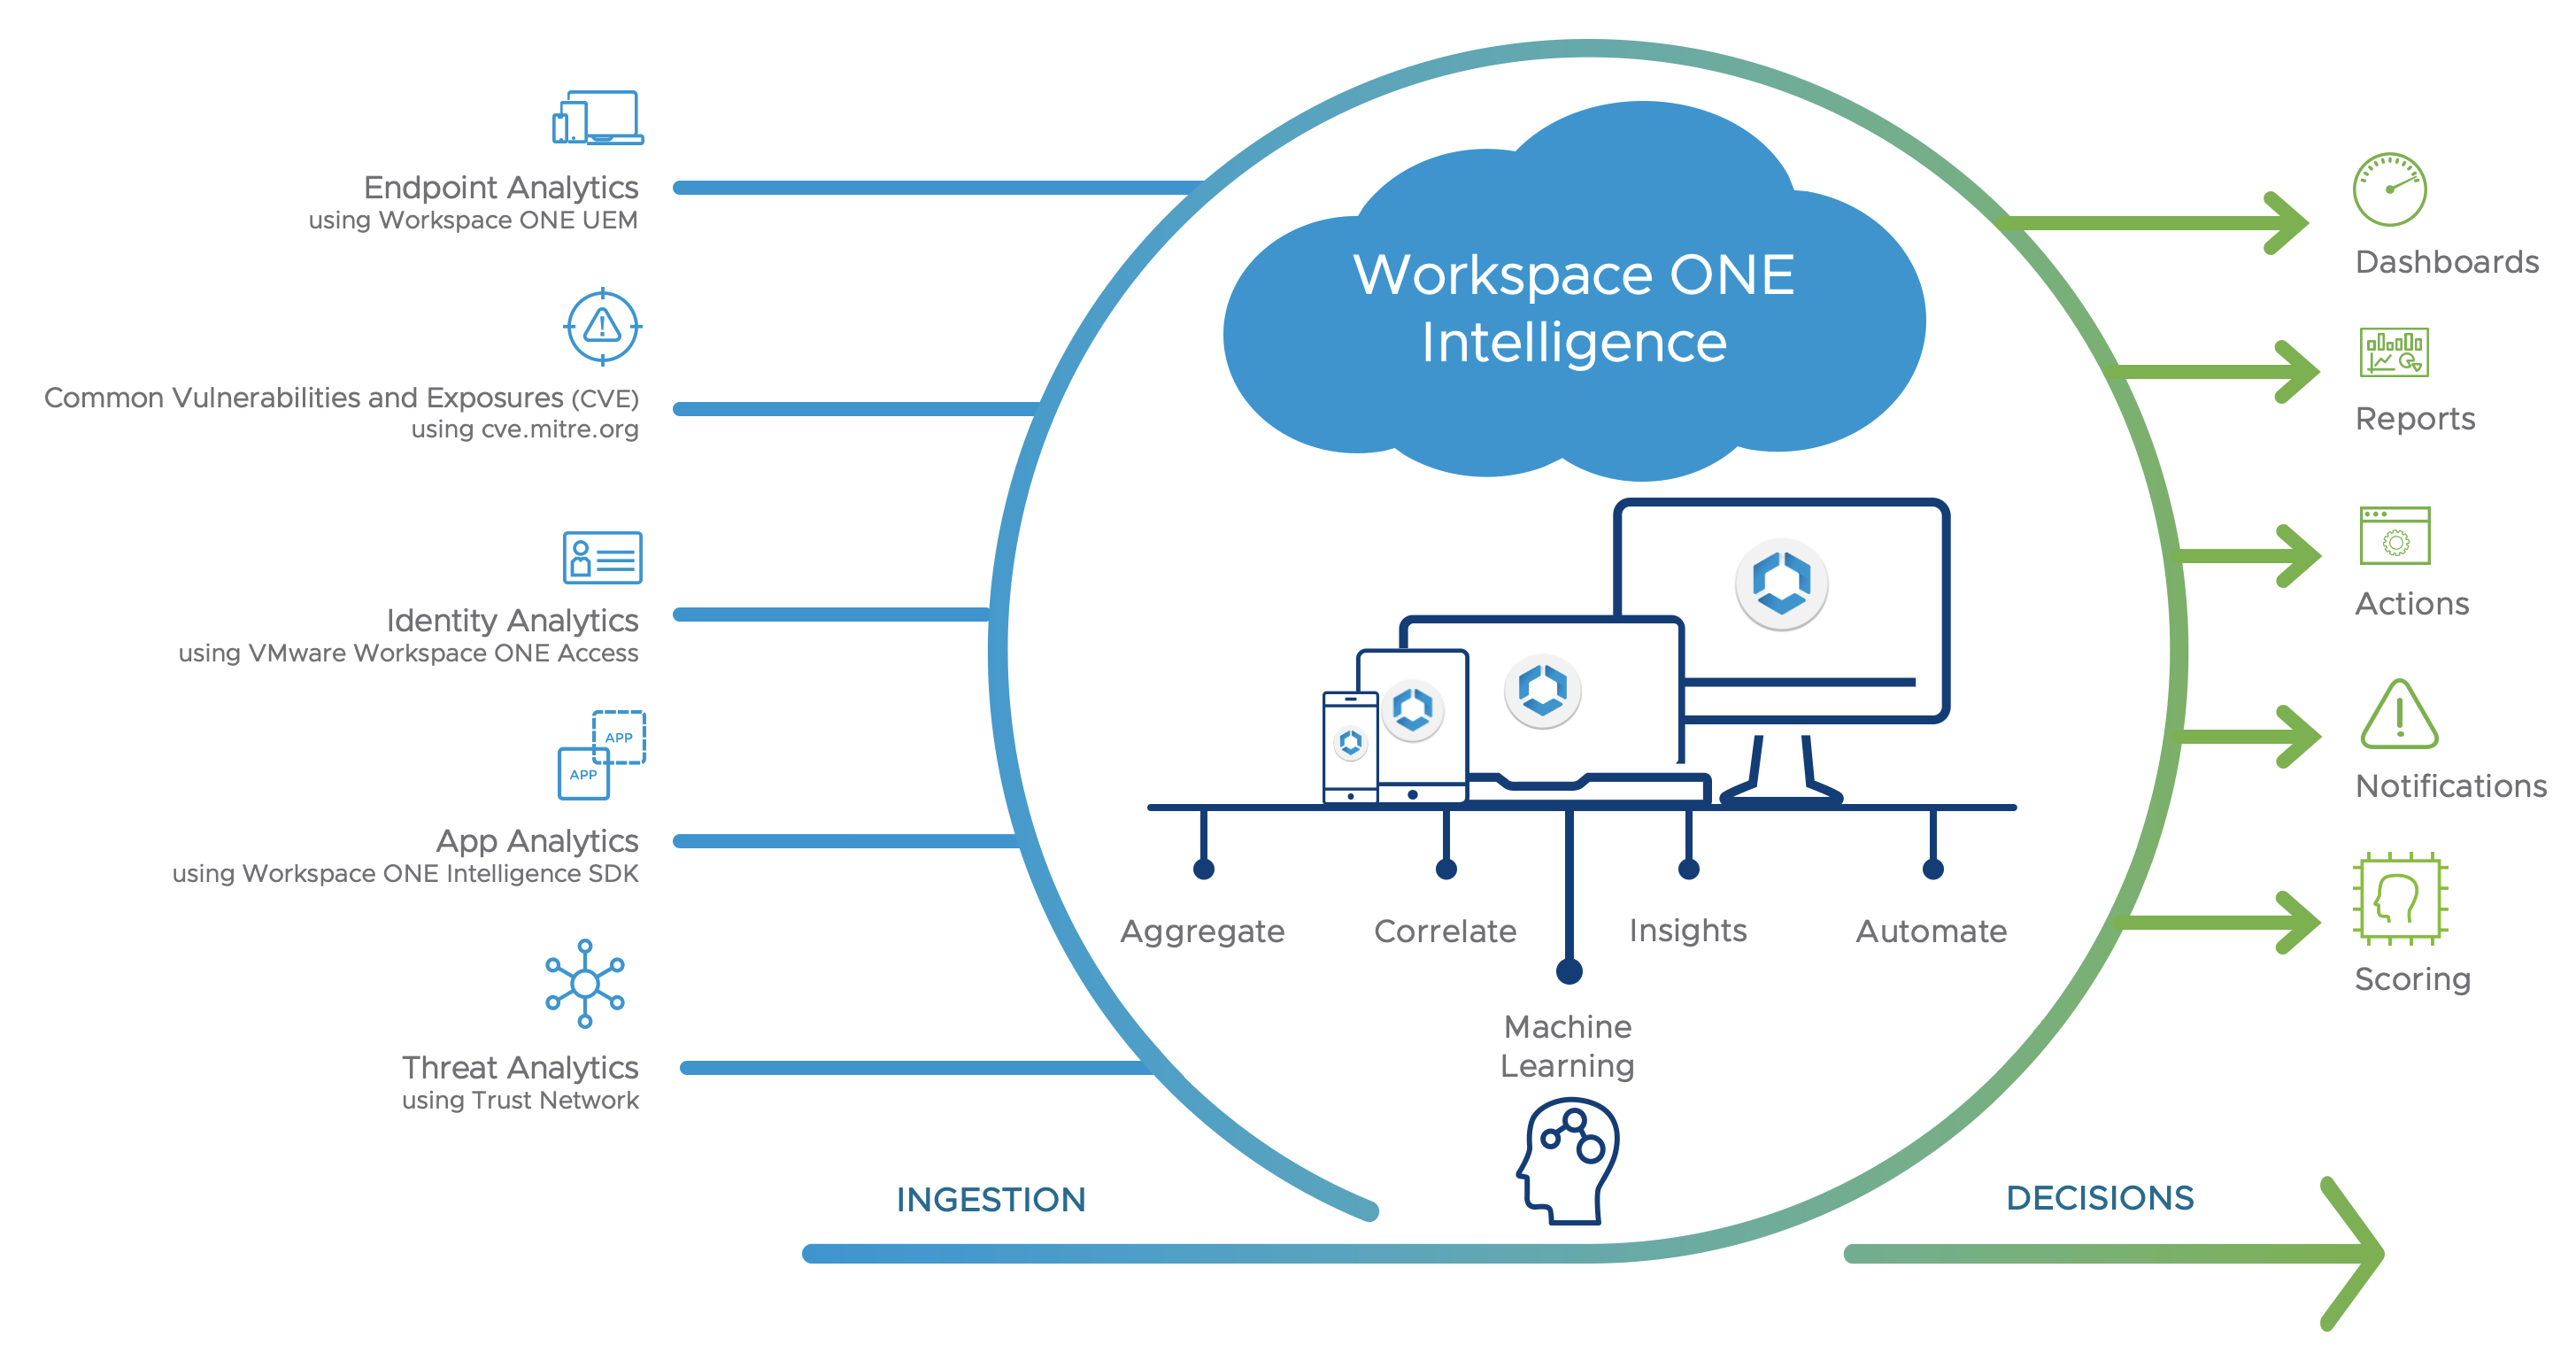 Workspace ONE Intelligence Overview